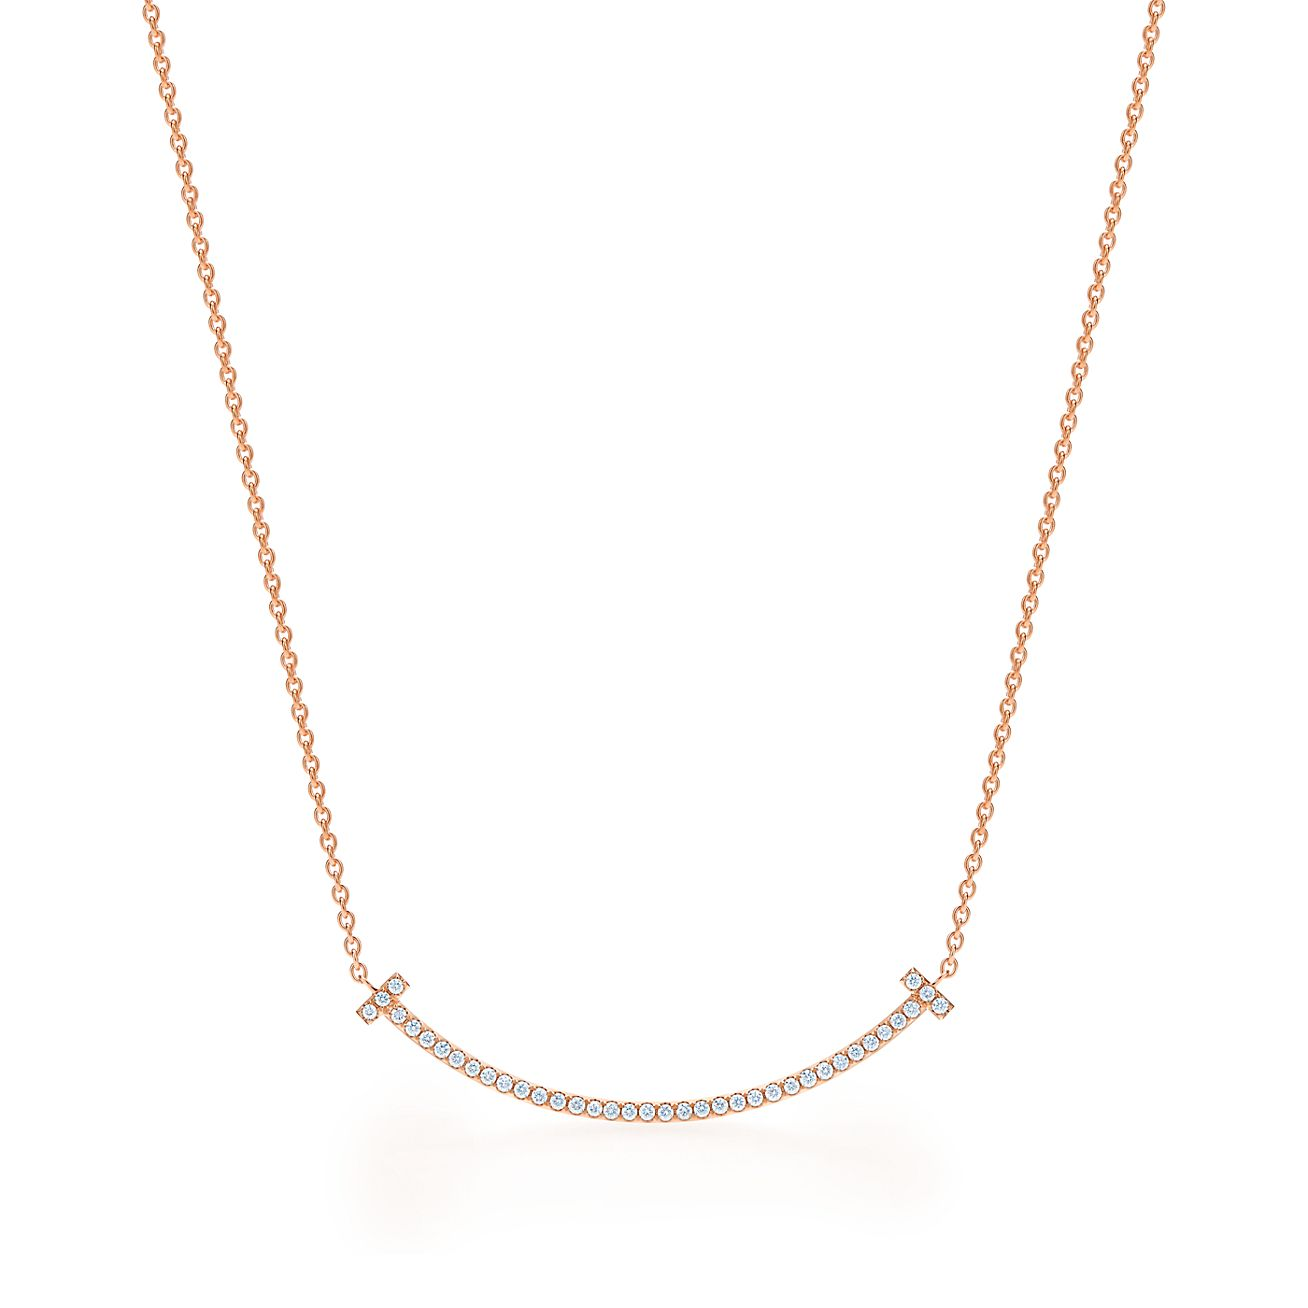 Chain in 18k rose gold, 16 long - Size 16 in Tiffany & Co.